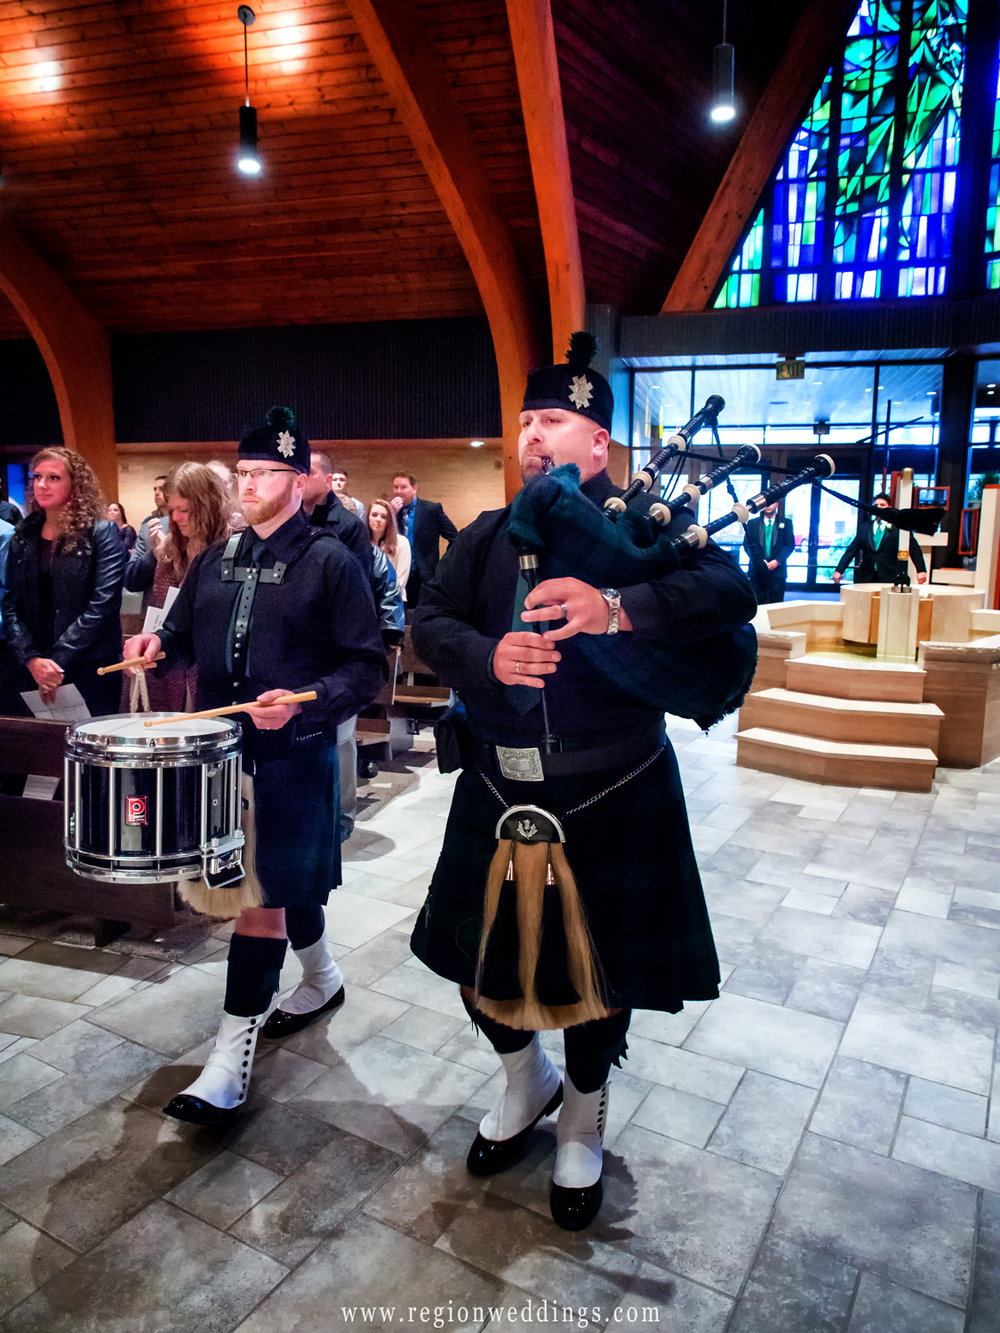 Men in kilts play bag pipes at a wedding at a Catholic church.